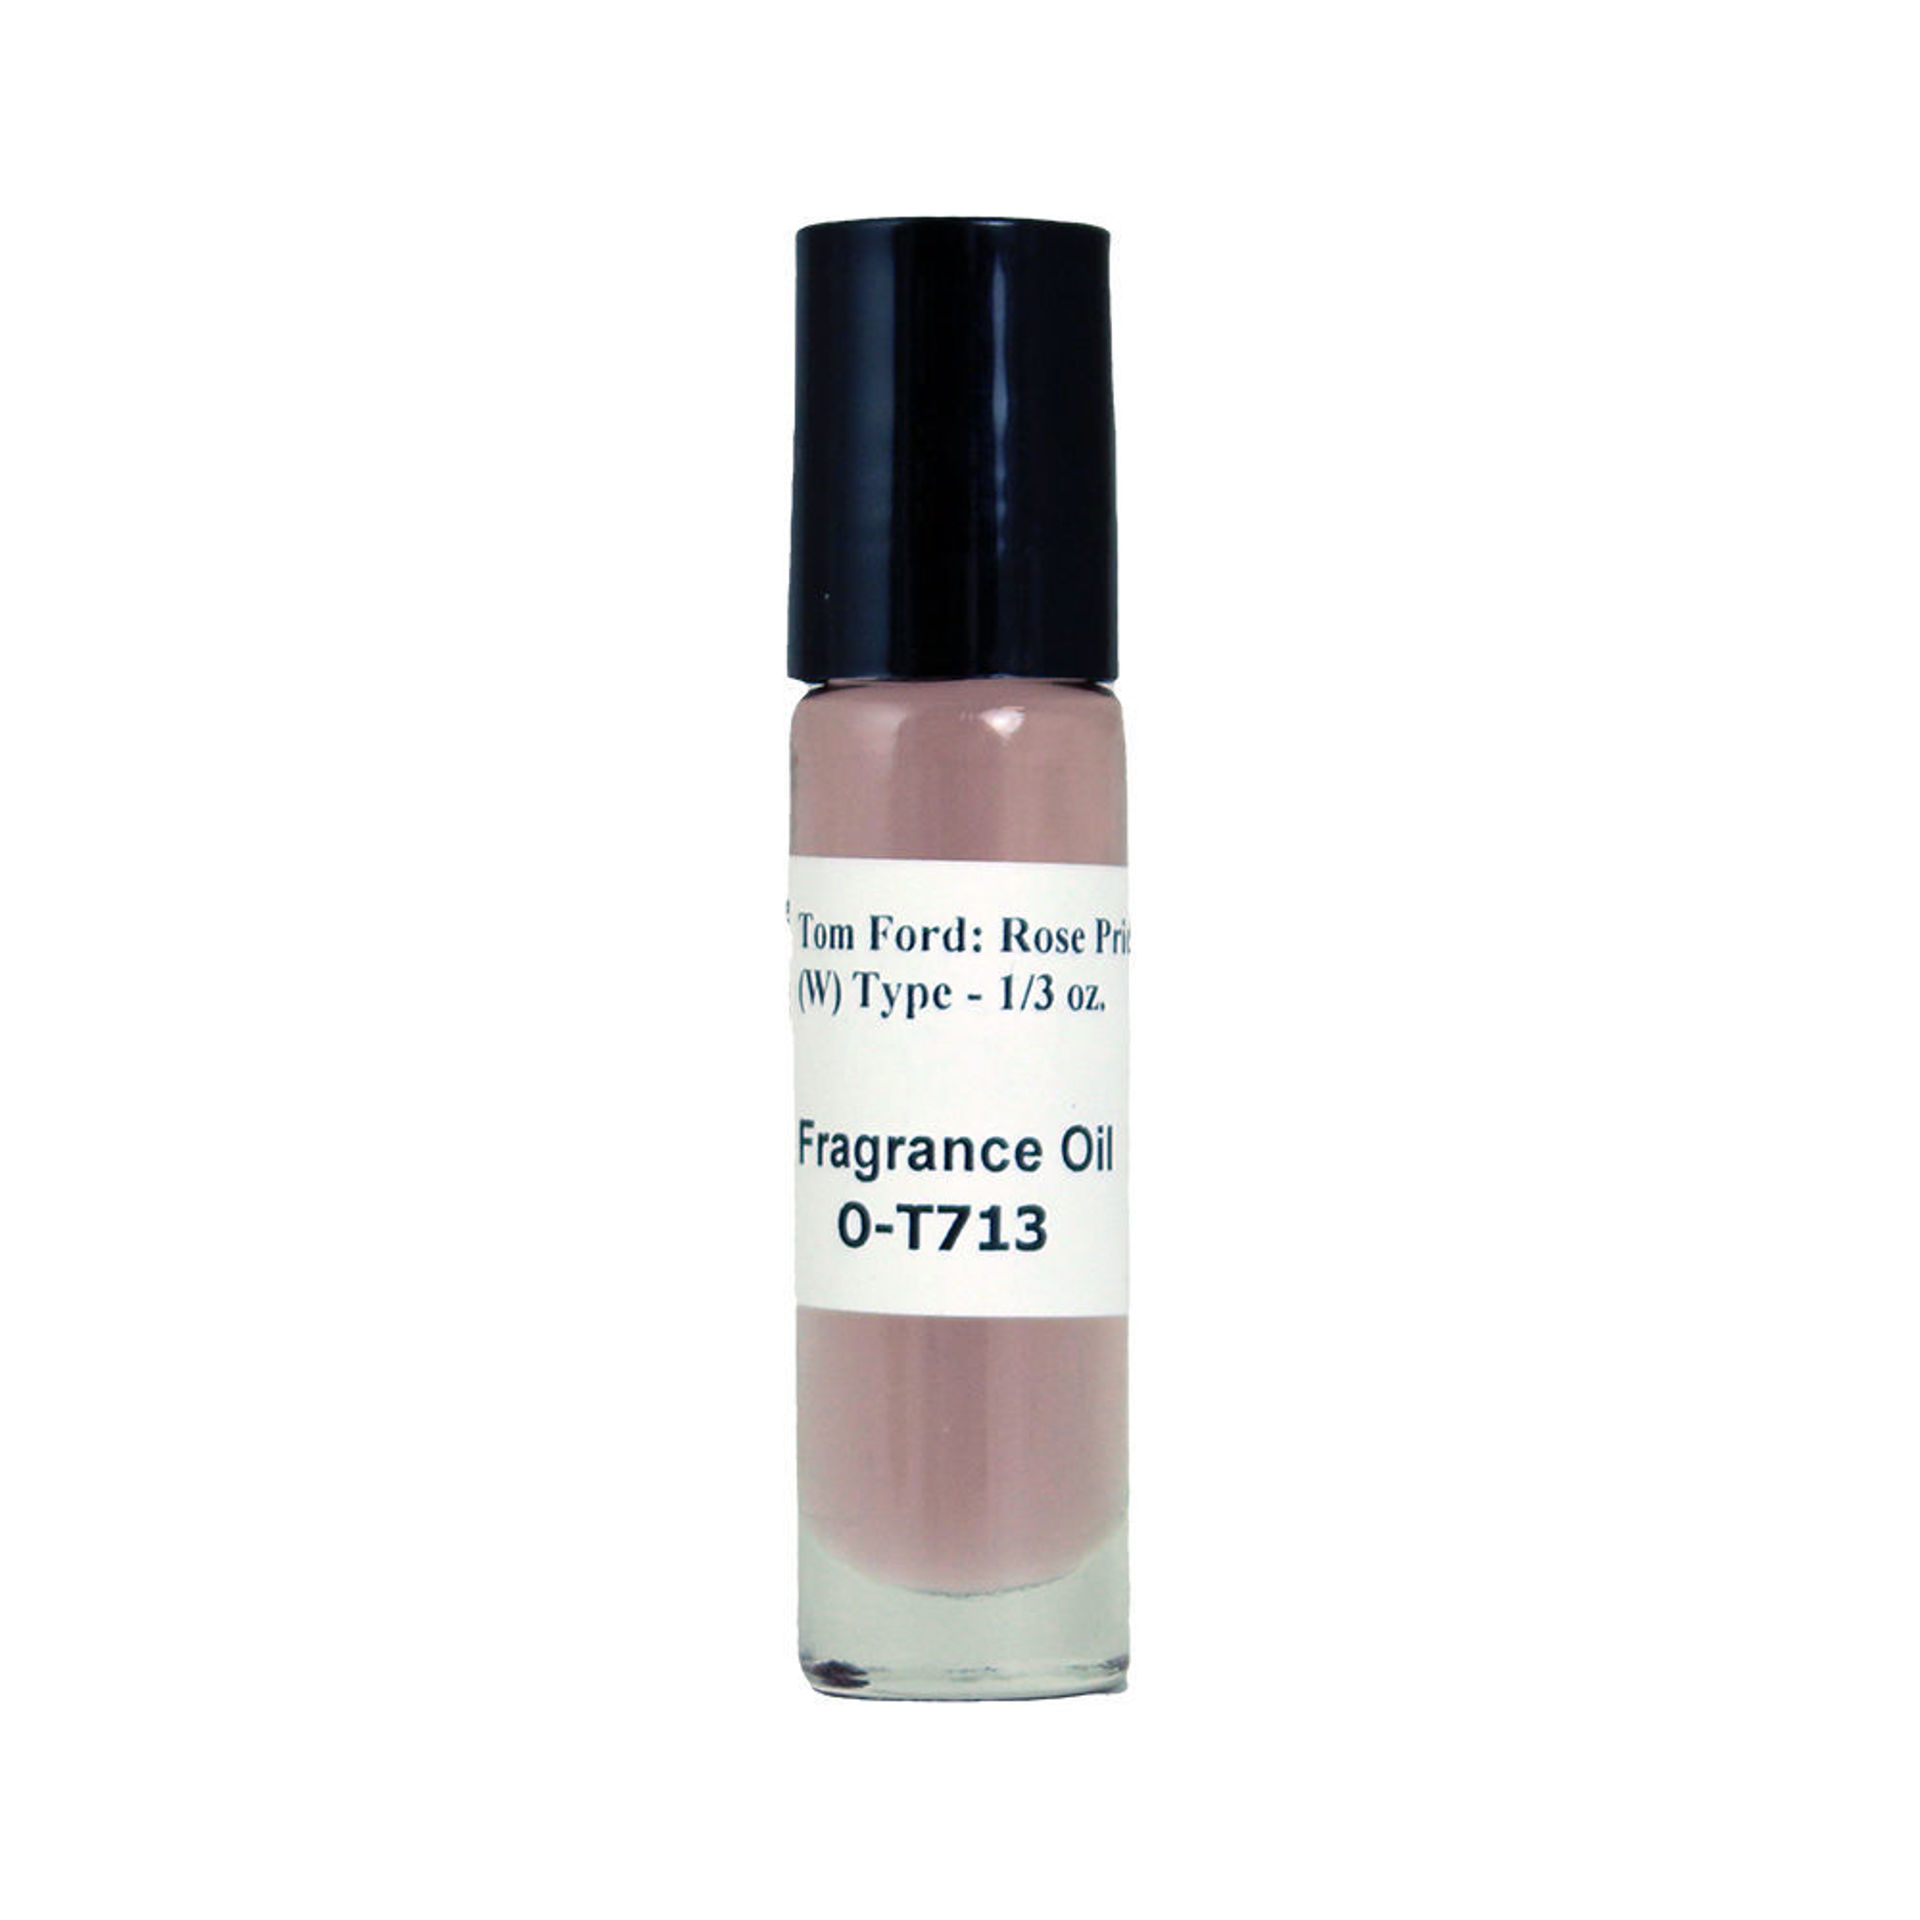 Picture of Tom Ford: Rose Prick (W) Type - 1/3 oz.